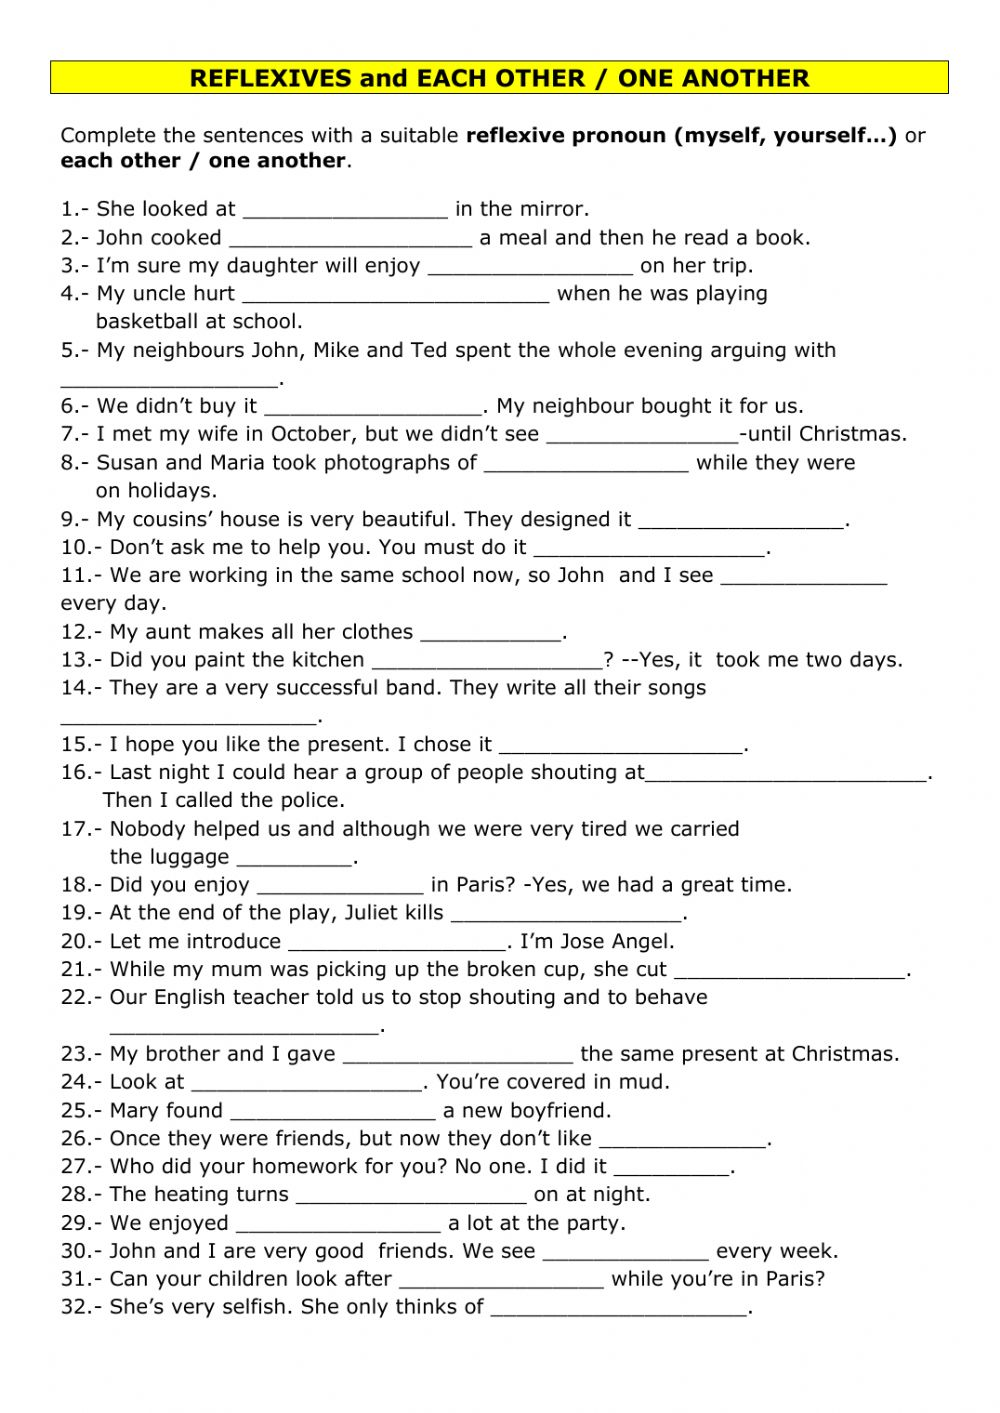 hight resolution of Reflexive pronouns or each other-one another worksheet